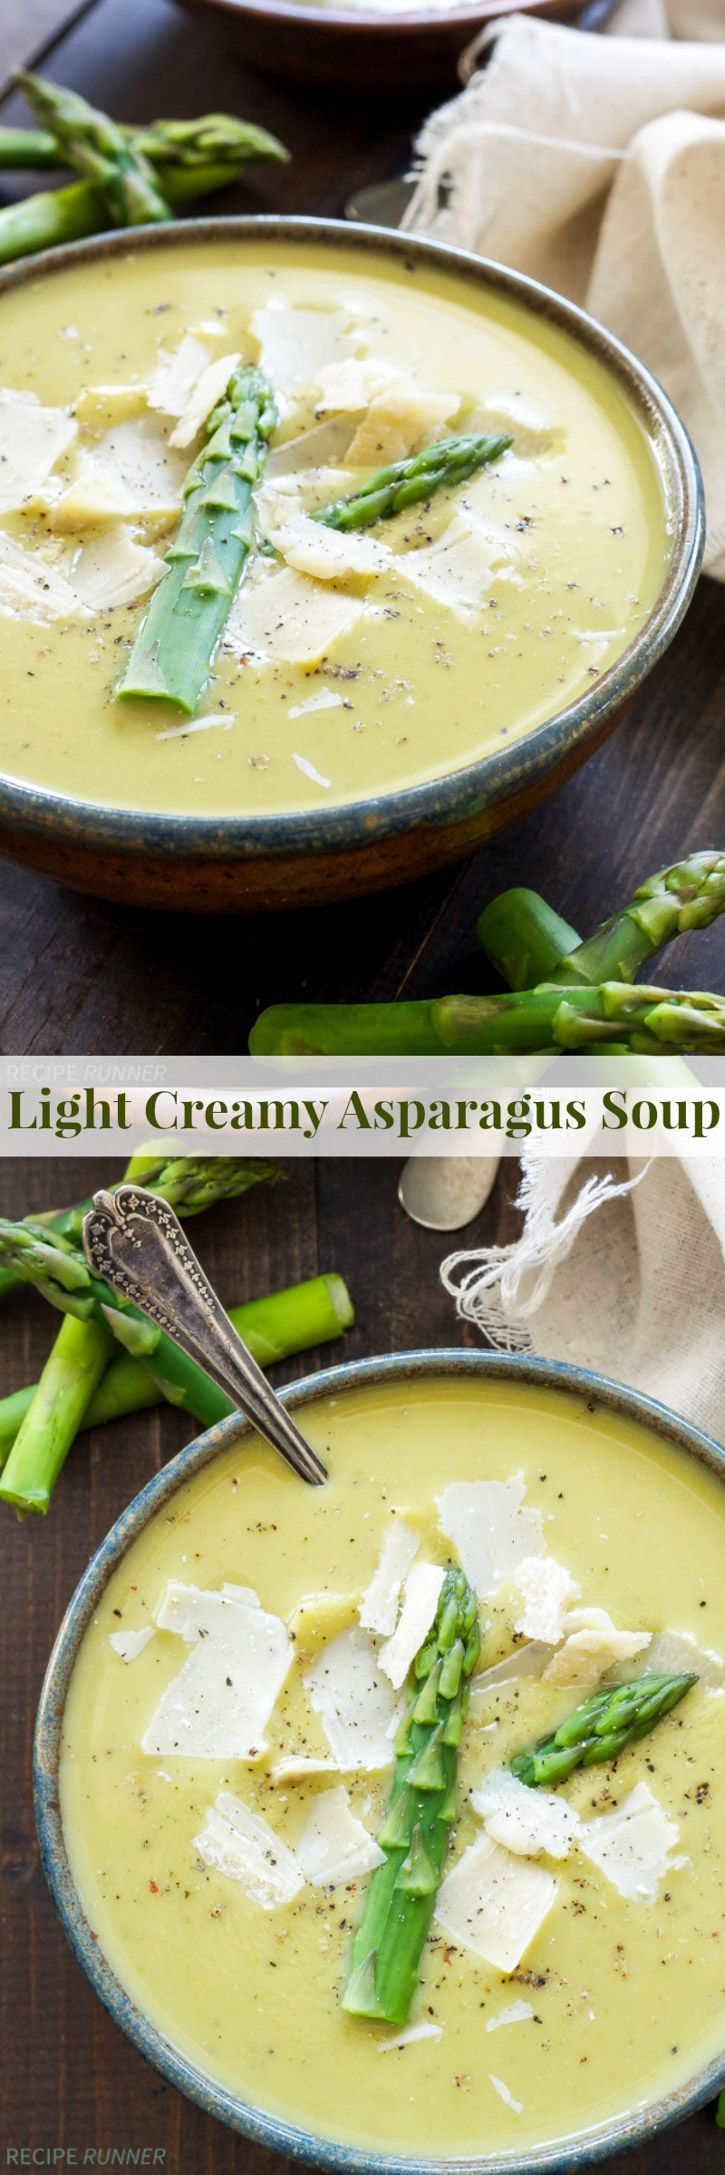 Light Creamy Asparagus Soup   A creamy, delicious and healthy soup for Asparagus lovers!